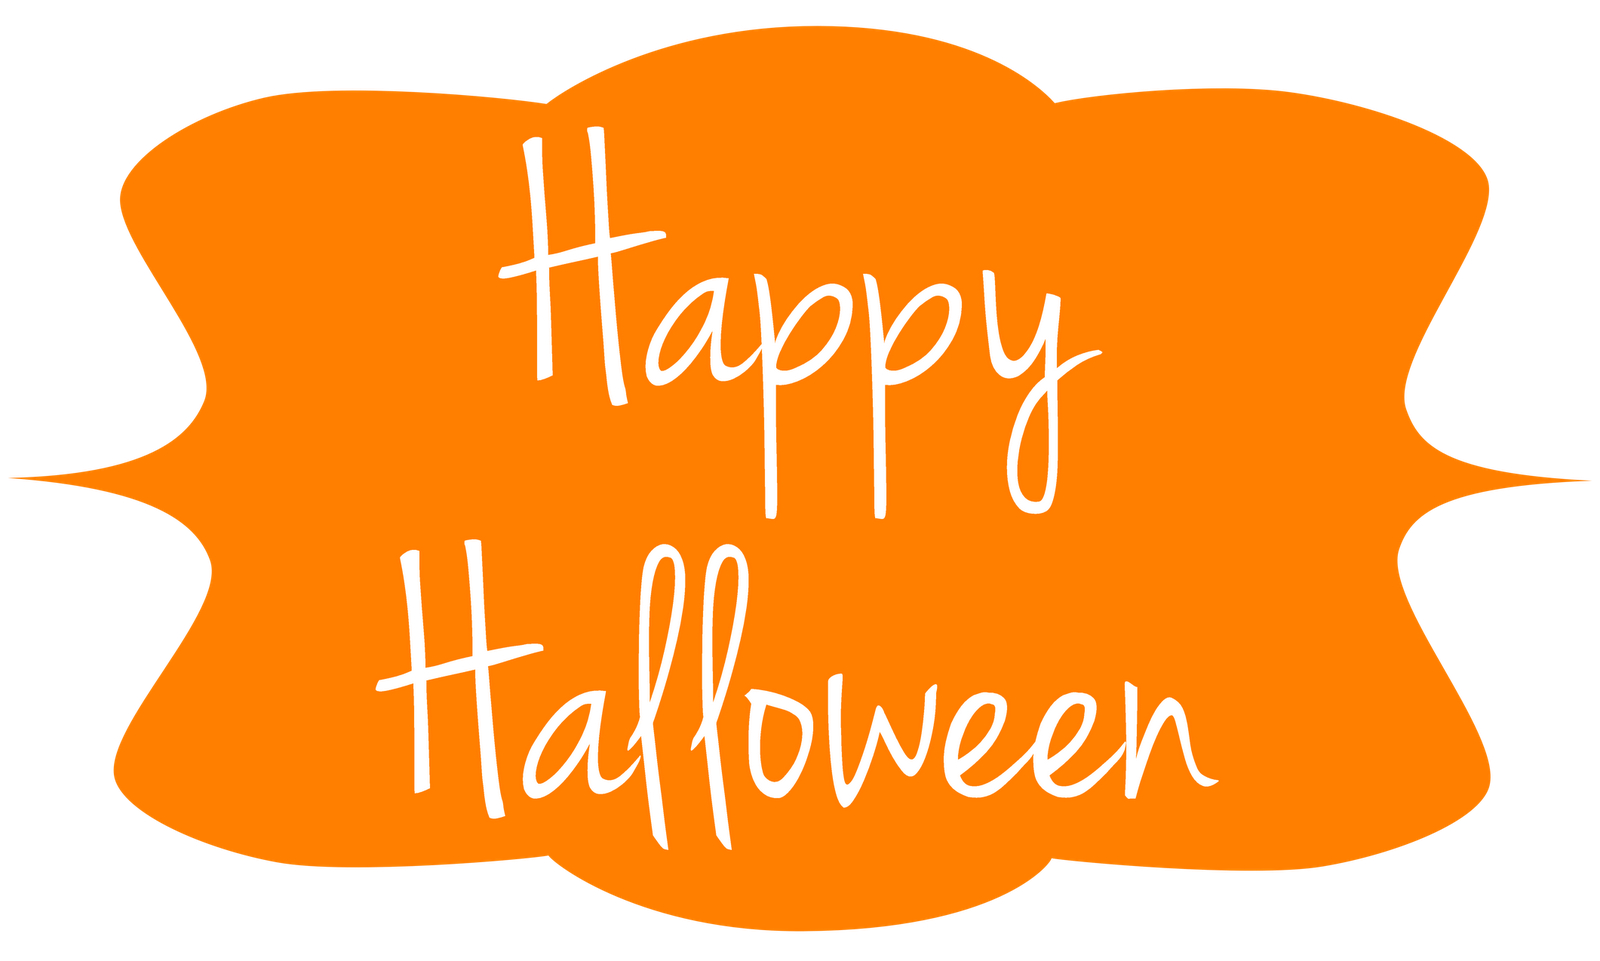 Happy halloween .png. Clipart panda free images